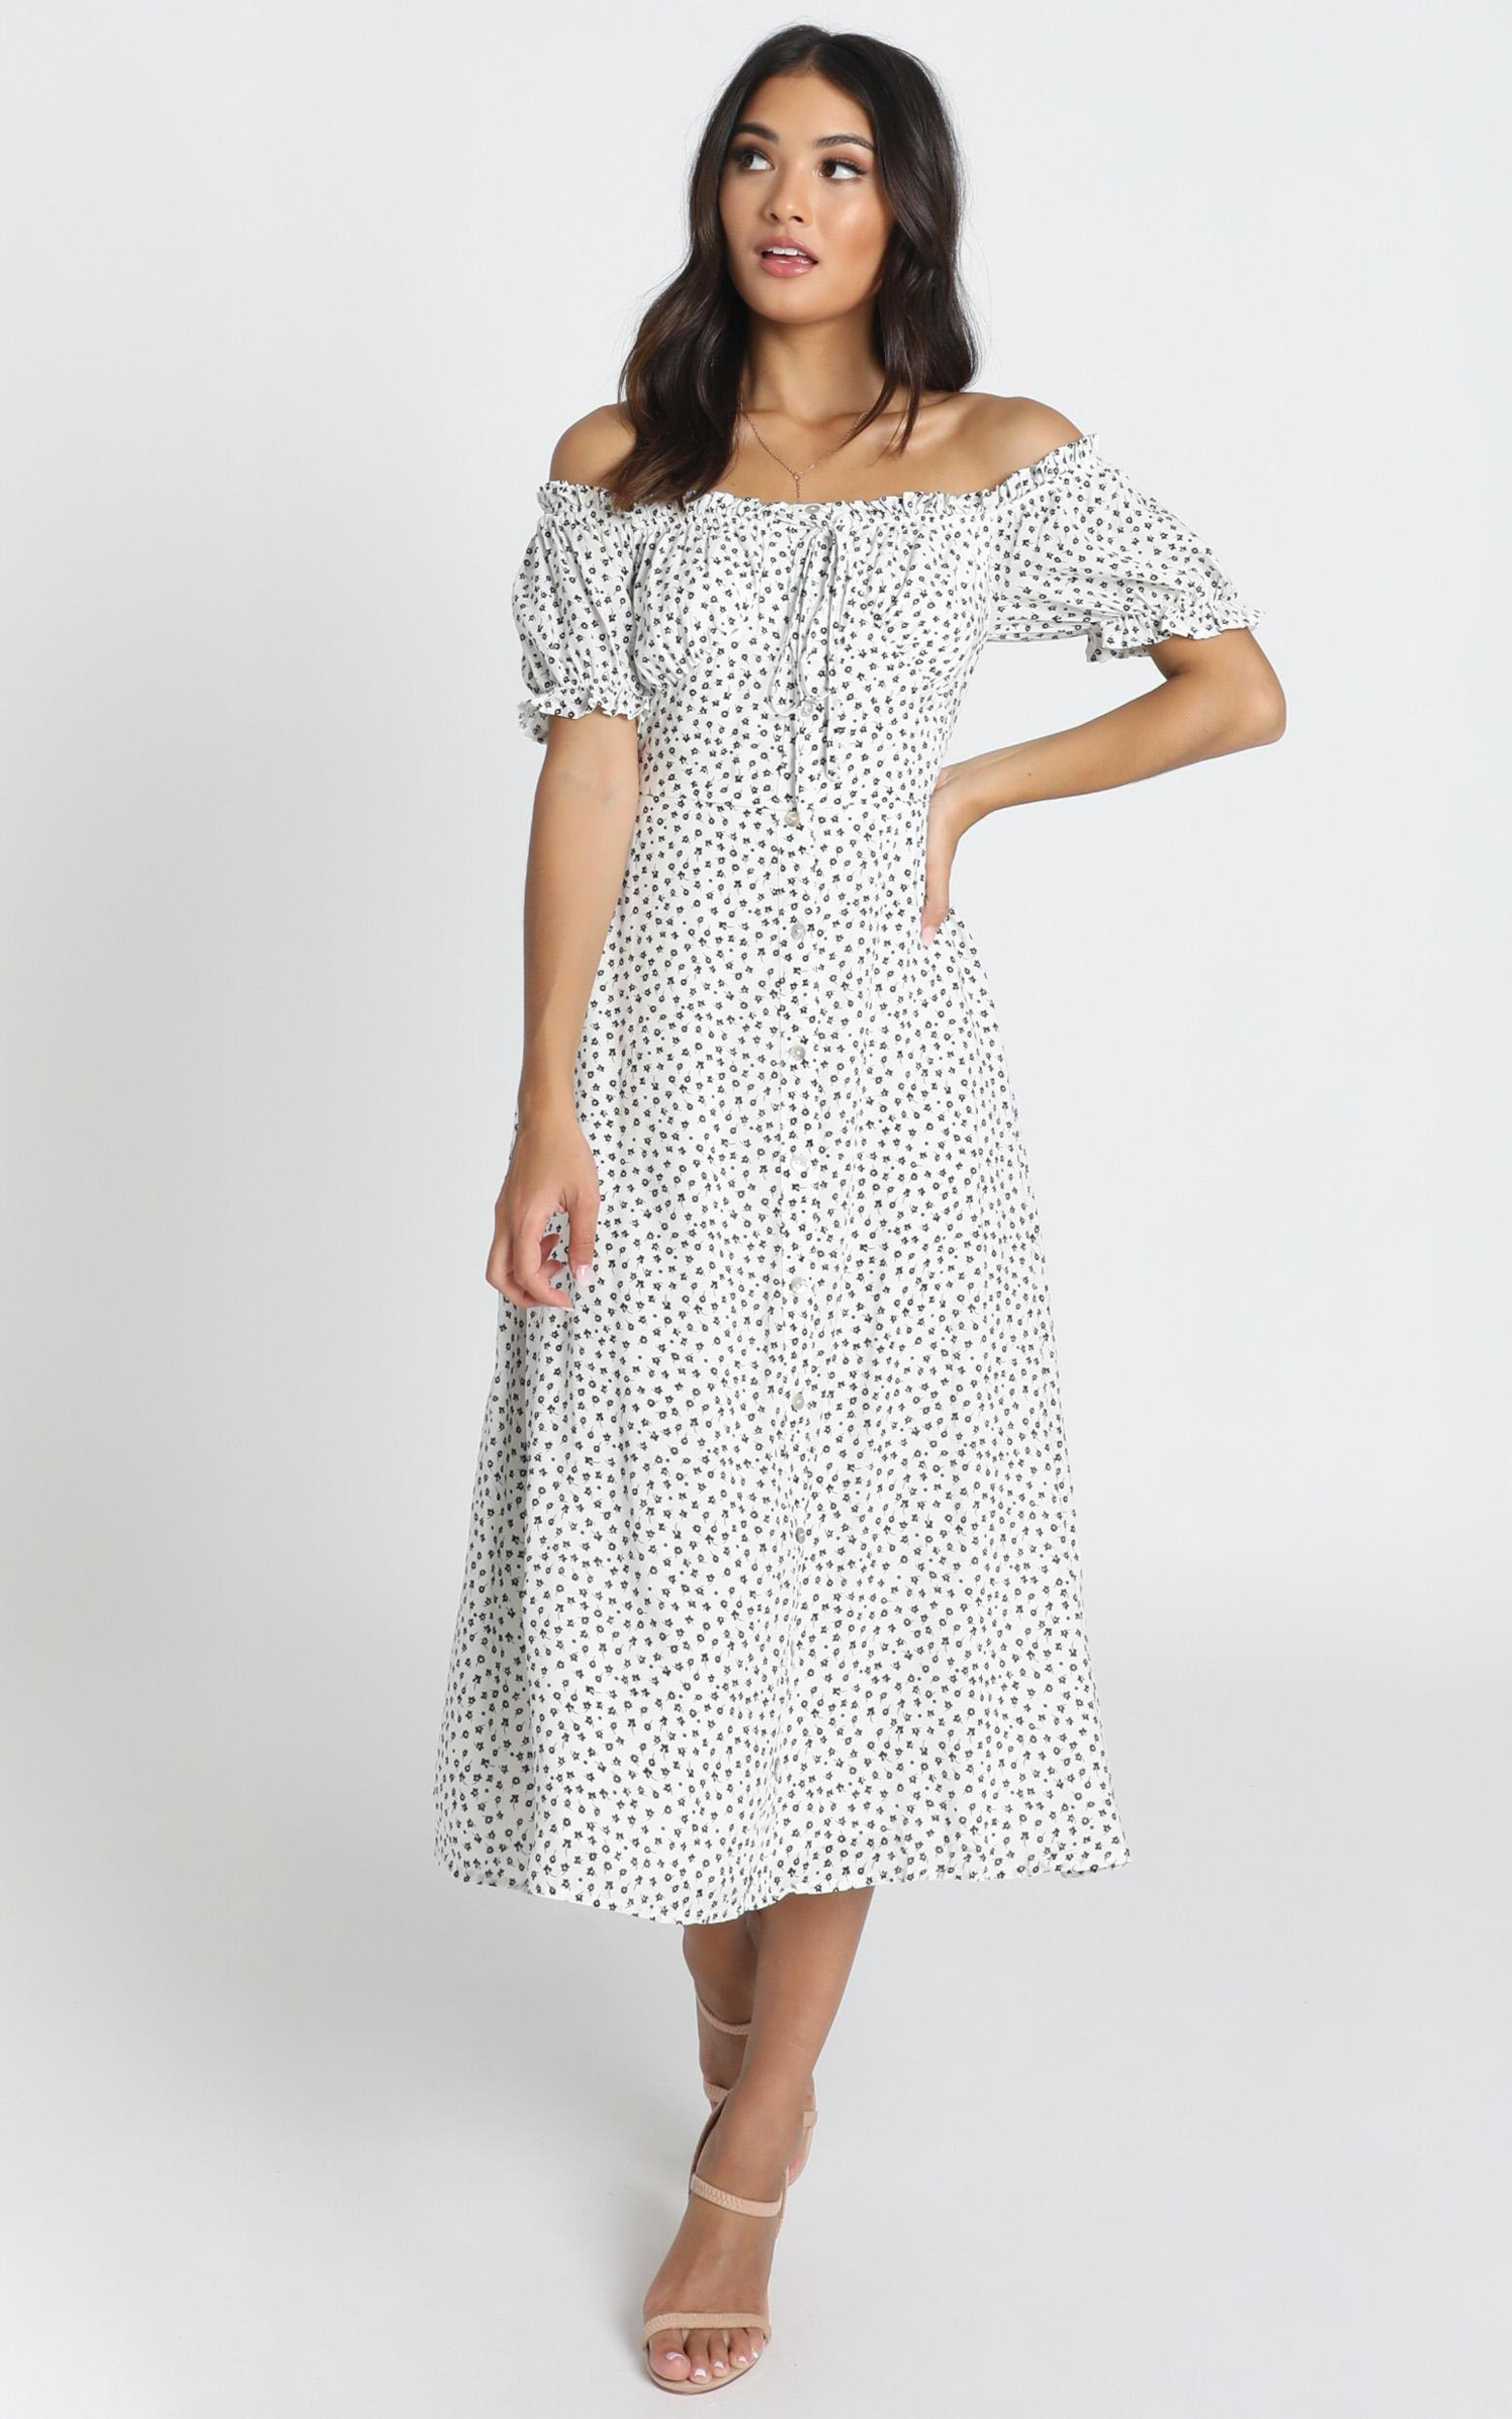 Rylee Dress in white spot - 14 (XL), White, hi-res image number null